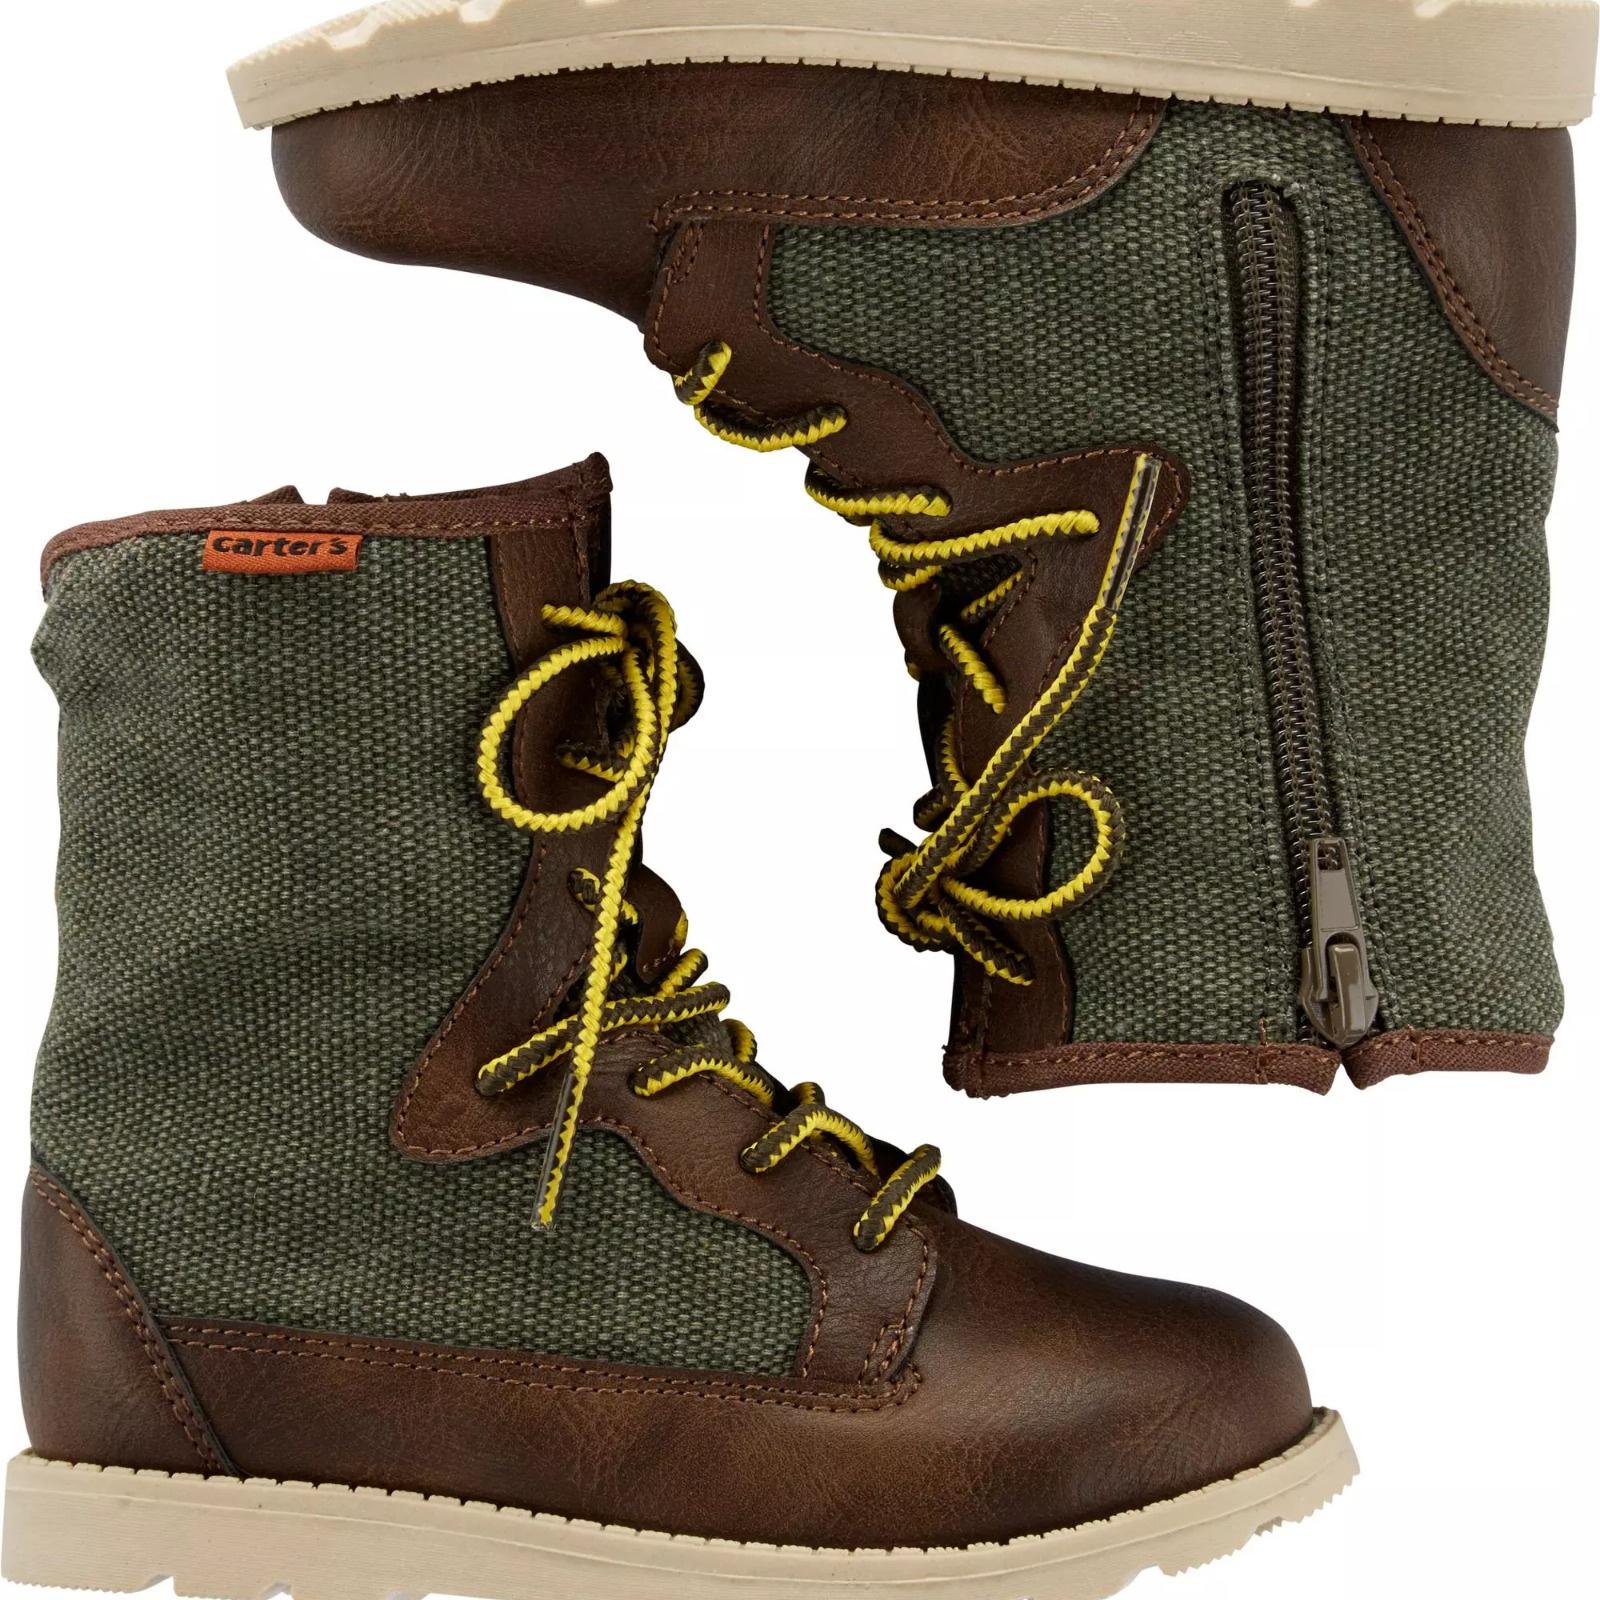 Carters High Top Hiker Boots